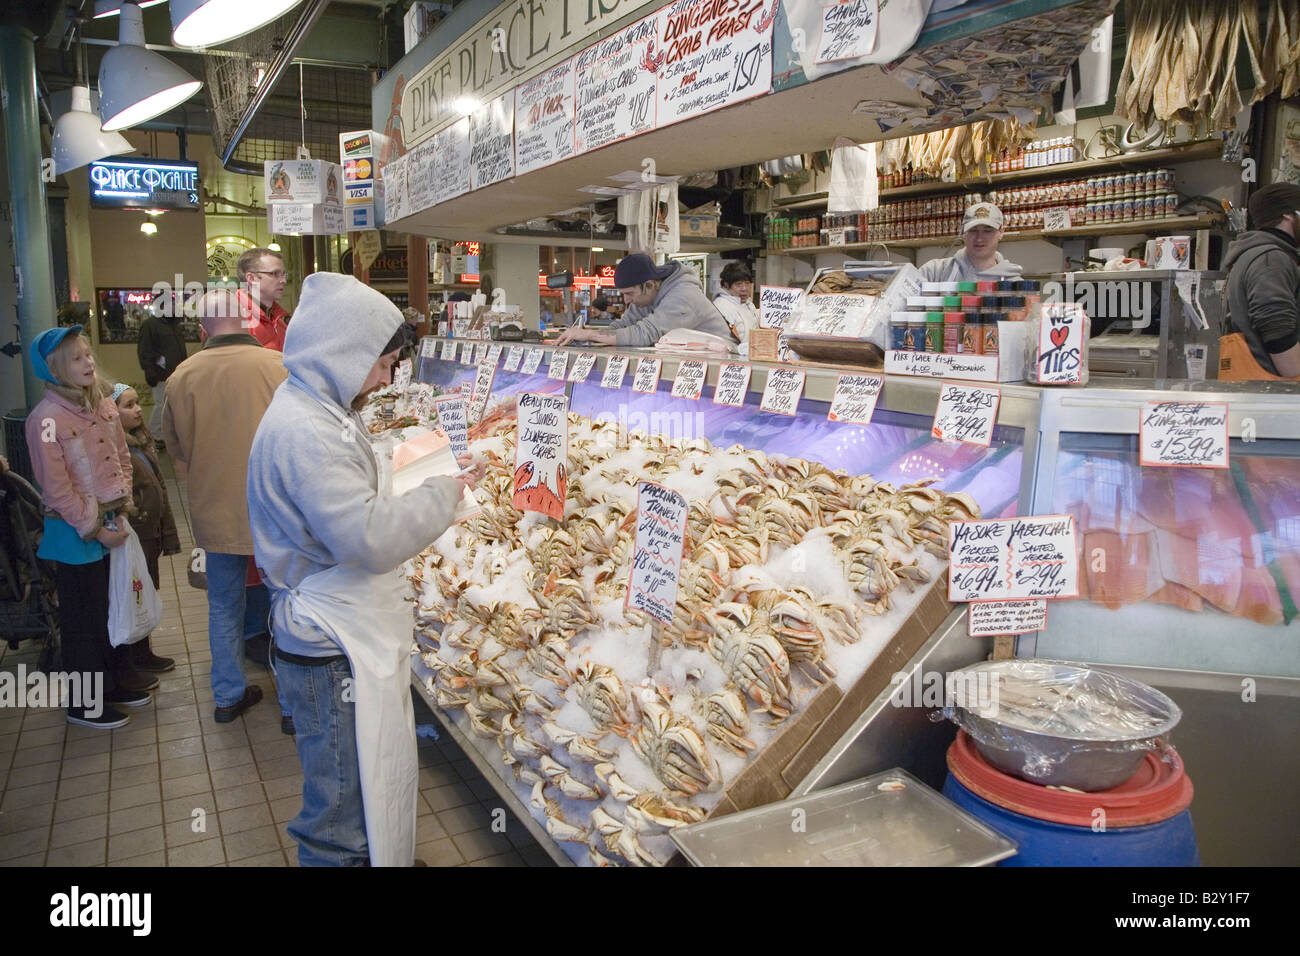 Pike place fish market in downtown seattle washington for Fish market seattle